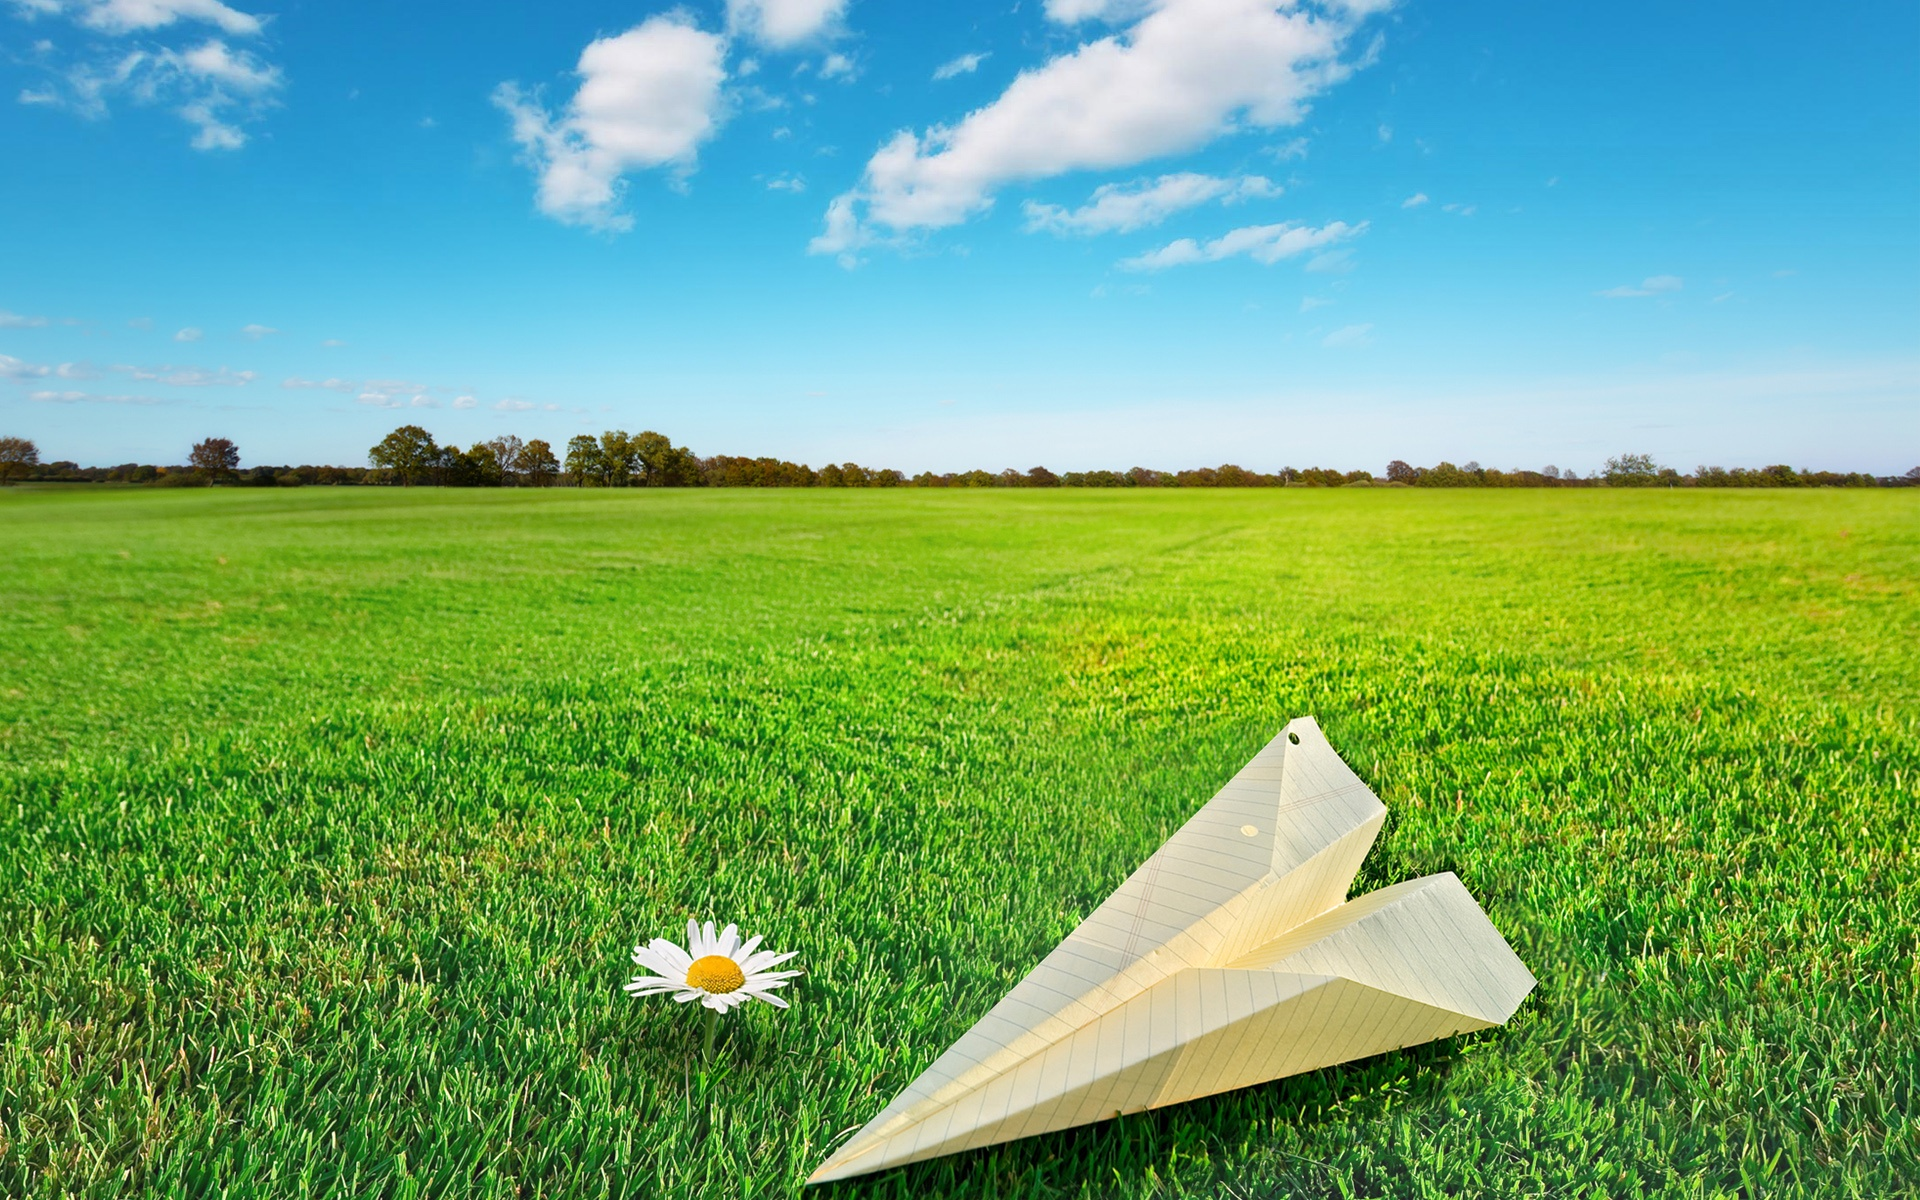 Paper Rocket Flower On Green Grass - Natural Beauty , HD Wallpaper & Backgrounds